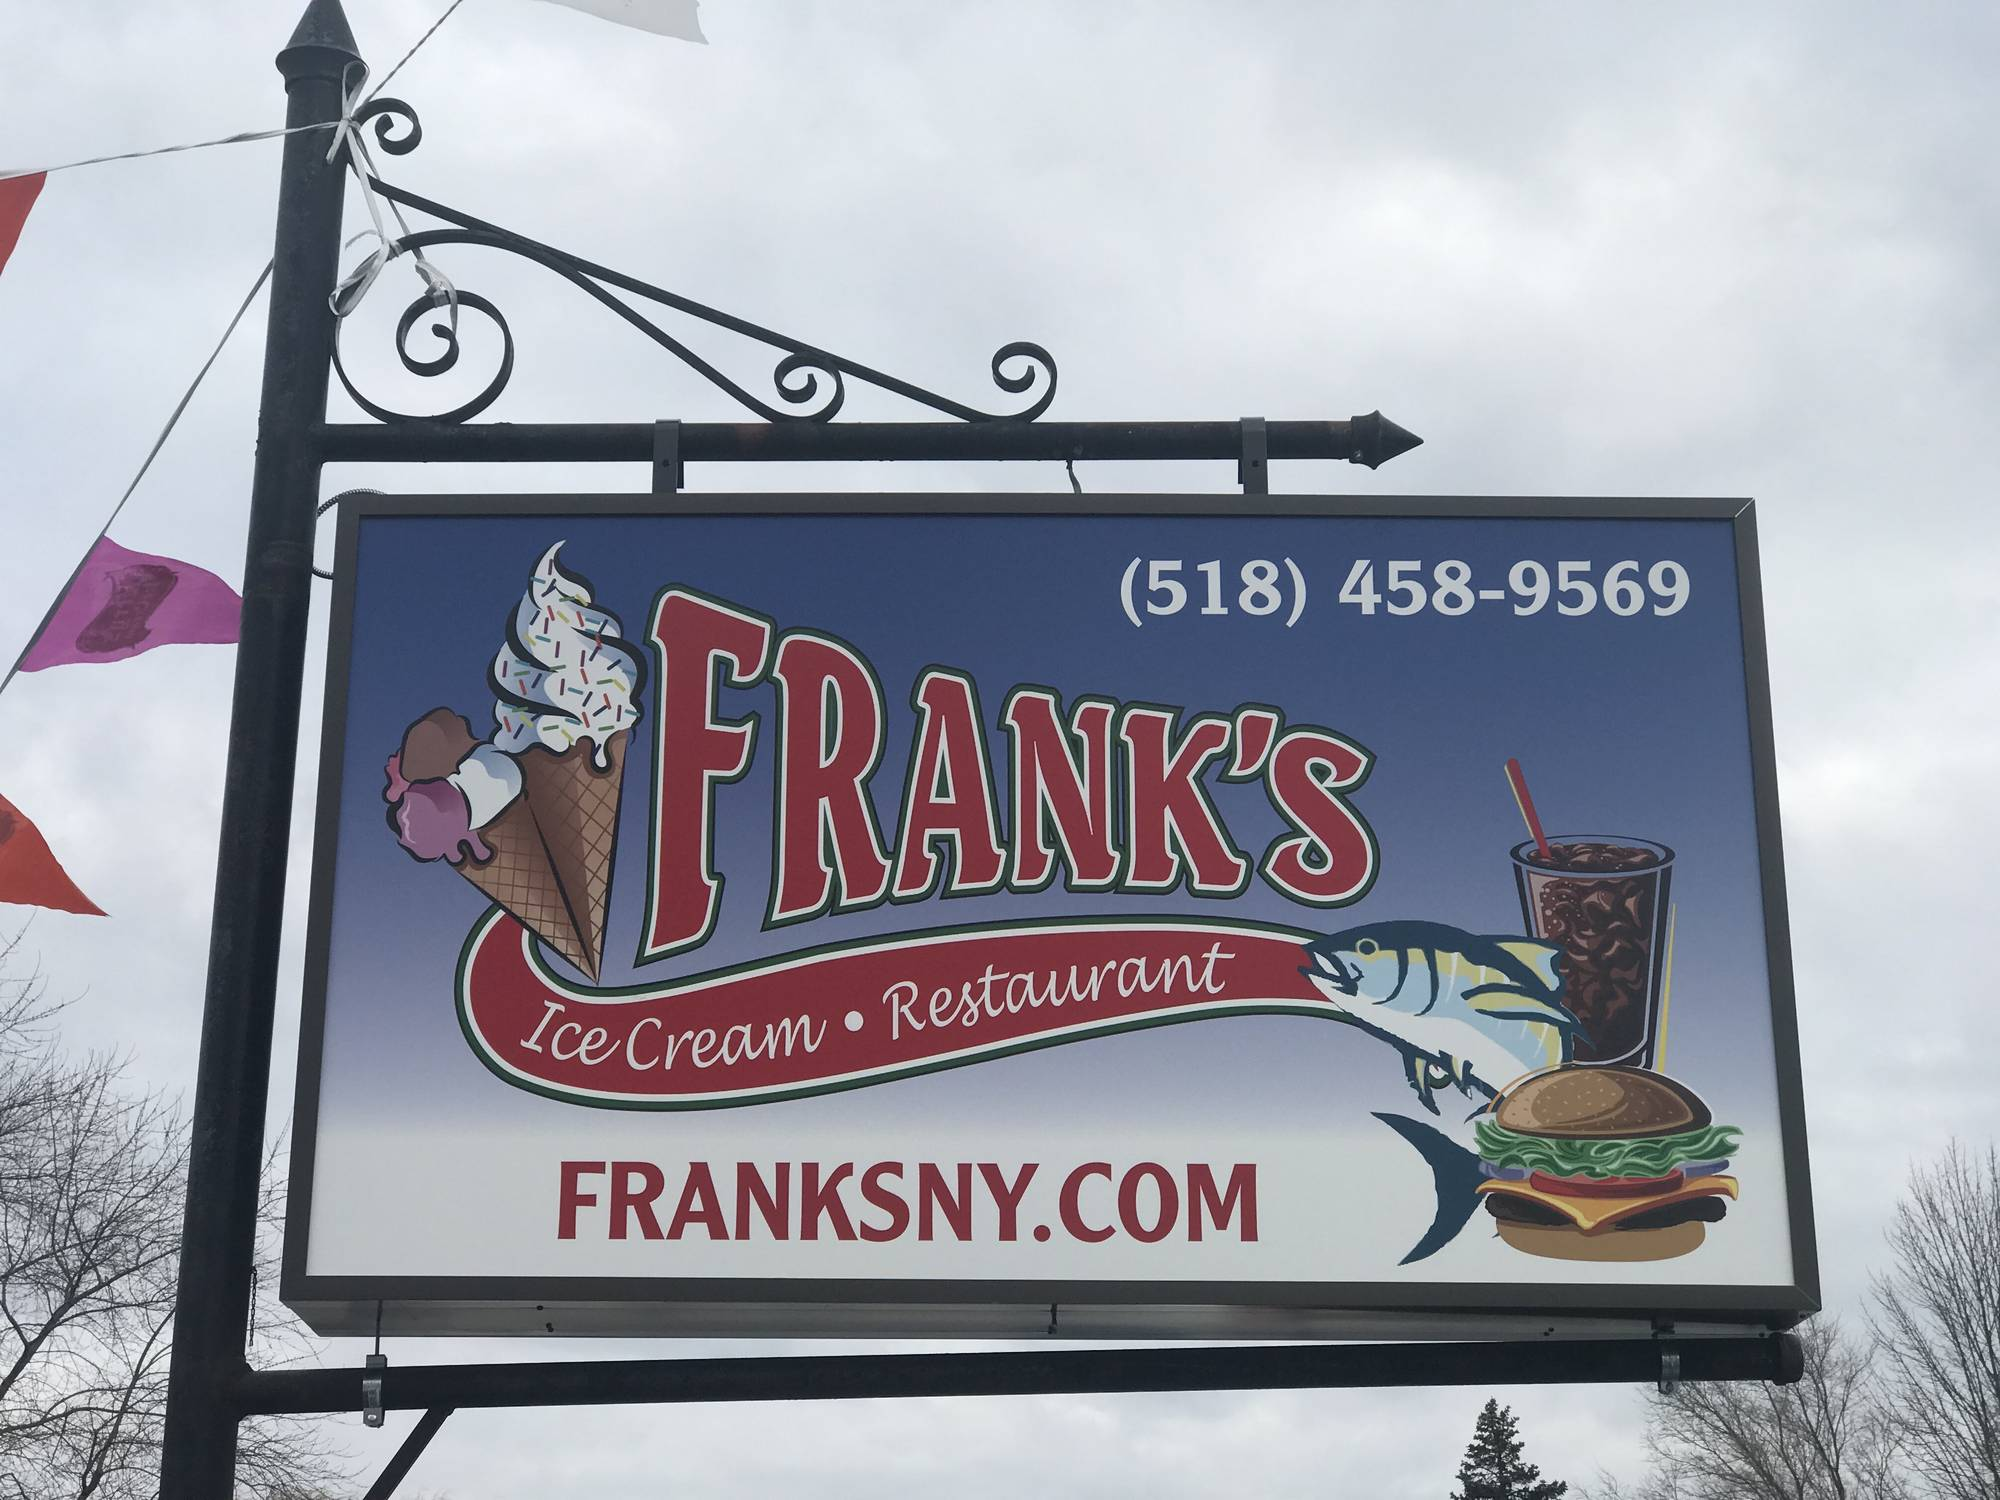 franks ice cream restaurant-front